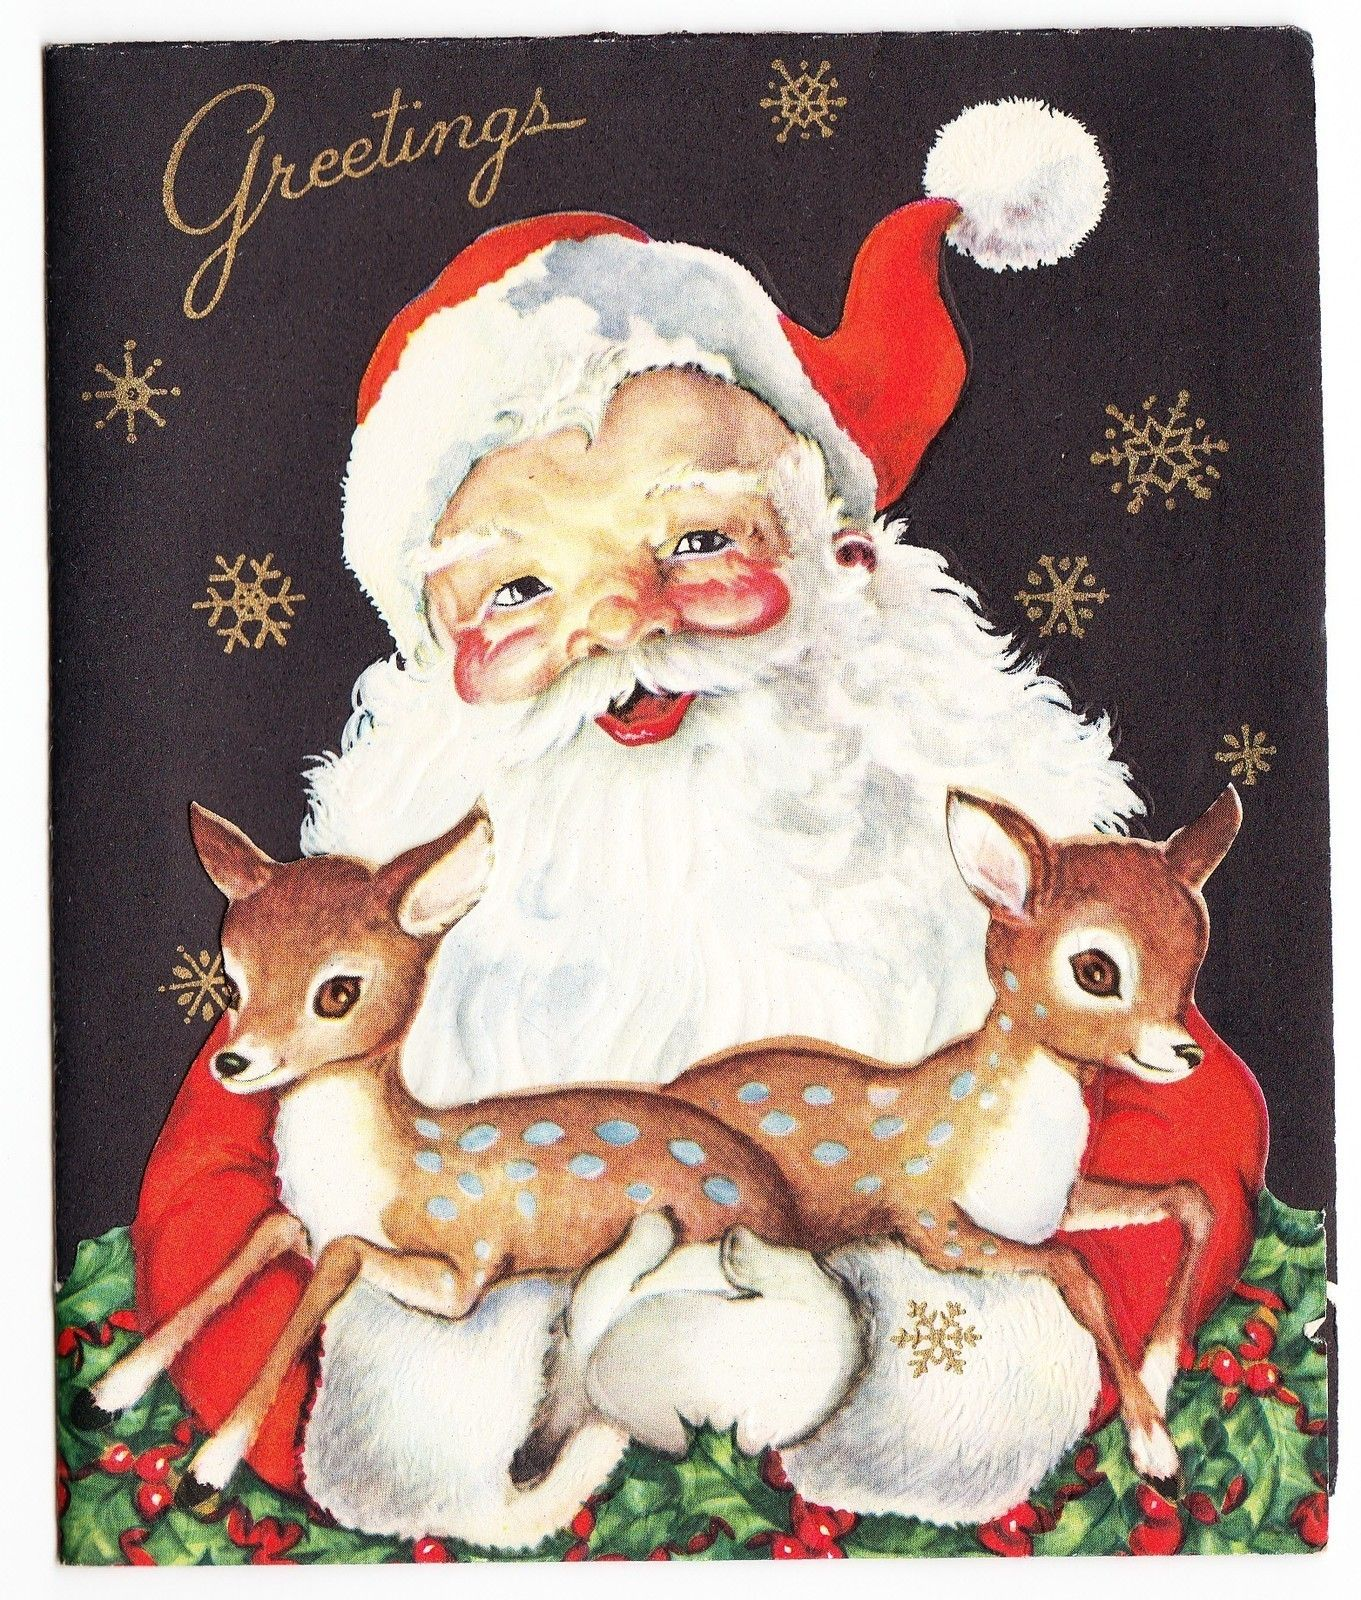 Vintage Christmas Card With Santa Claus Holding Baby